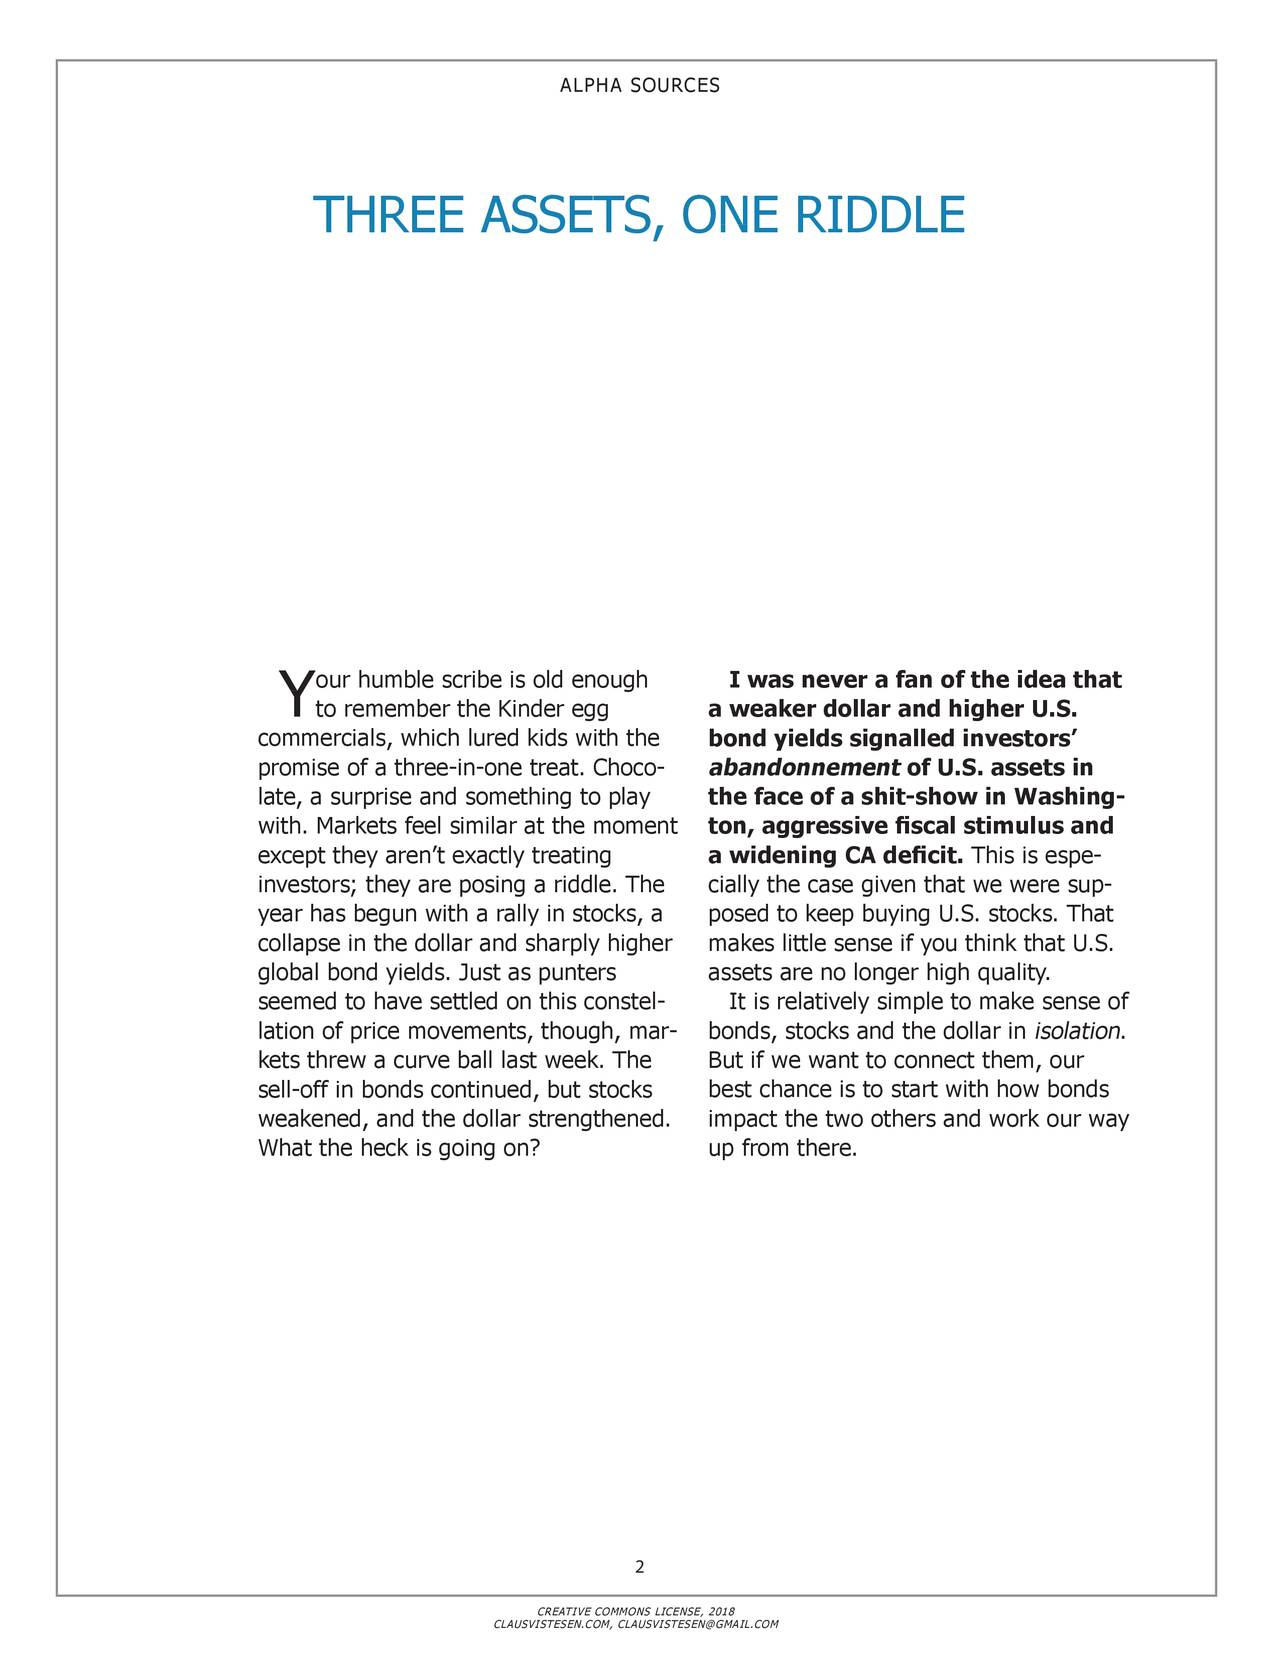 THREE ASSETS, ONE RIDDLE our humble scribe is old enough I was never a fan of the idea that Y to remember the Kinder egg a weaker dollar and higher U.S. commercials, which lured kids with the bond yields signalled investors' promise of a three-in-one treat. Choco- abandonnement of U.S. assets in late, a surprise and something to play the face of a shit-show in Washing- with. Markets feel similar at the moment ton, aggressive fiscal stimulus and except they aren't exactly treating a widening CA deficit. This is espe- investors; they are posing a riddle. The cially the case given that we were sup- year has begun with a rally in stocks, a posed to keep buying U.S. stocks. That collapse in the dollar and sharply higher makes little sense if you think that U.S. global bond yields. Just as punters assets are no longer high quality. seemed to have settled on this constel- It is relatively simple to make sense of lation of price movements, though, mar - bonds, stocks and the dollar insolation. kets threw a curve ball last week. The But if we want to connect them, our sell-off in bonds continued, but stocks best chance is to start with how bonds weakened, and the dollar strengthened. impact the two others and work our way What the heck is going on? up from there. 2 CREATIVE COMMONS LICENSE, 2018 CLAUSVISTESEN.COM, CLAUSVISTESEN@GMAIL.COM